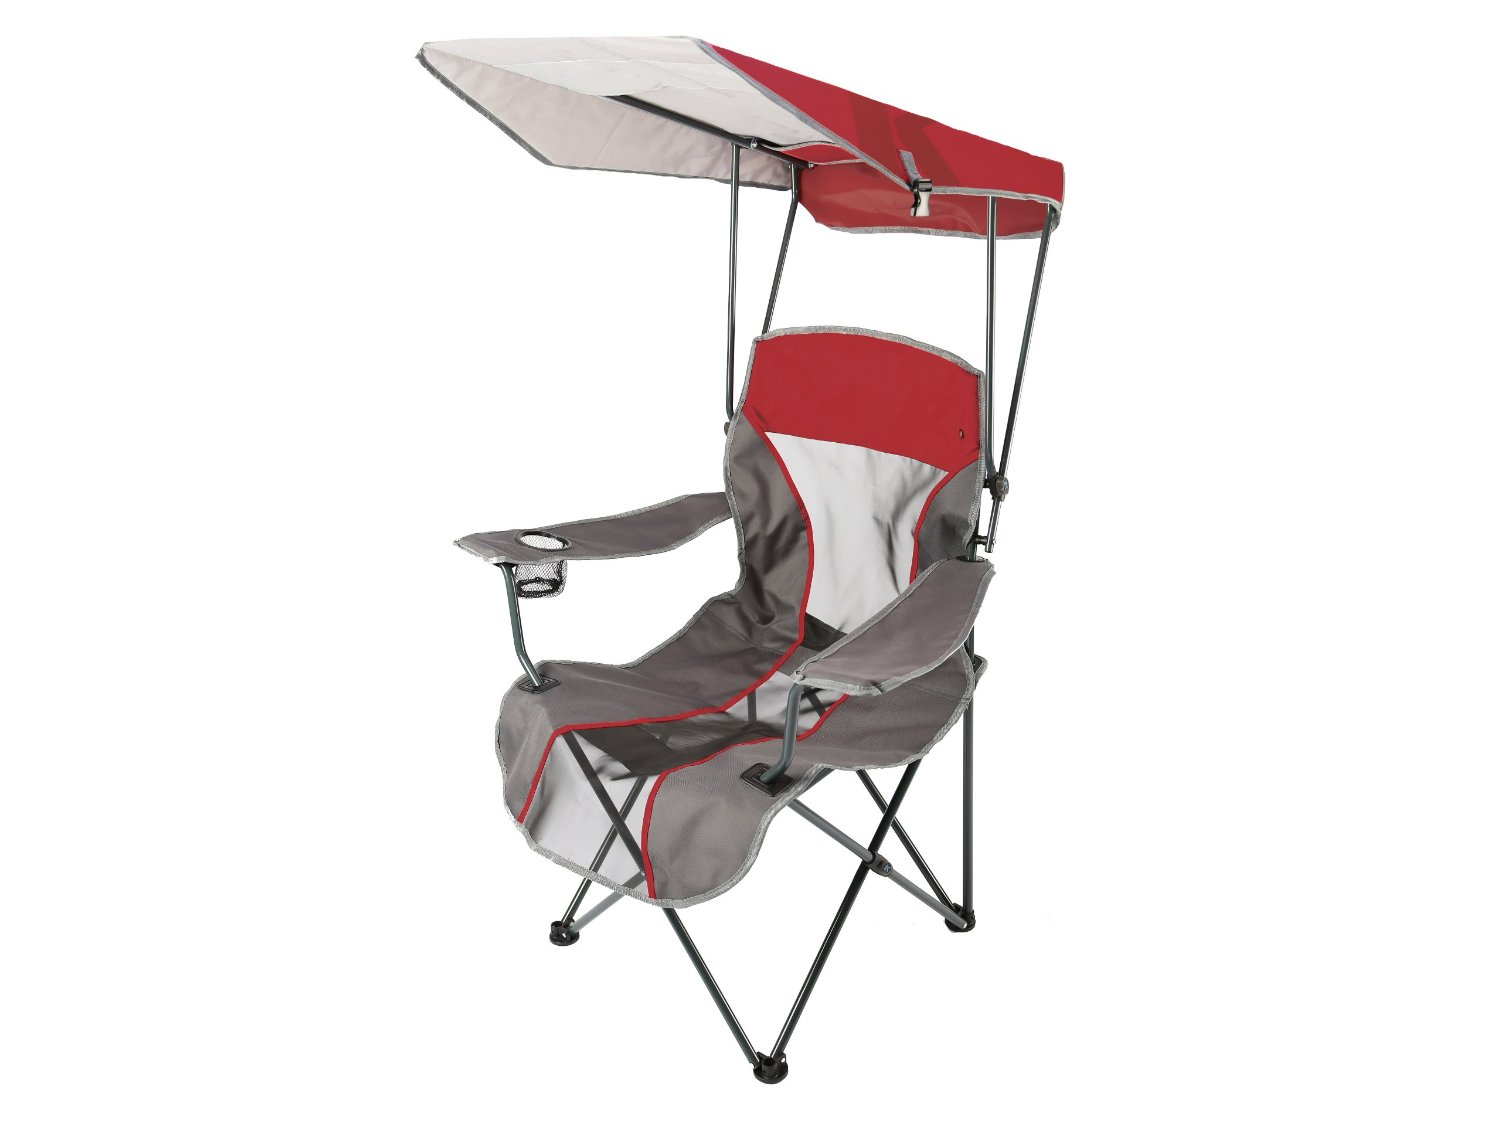 Fold Up Chair With Canopy Swimways Premium Canopy Chair Red Fitness And Sports